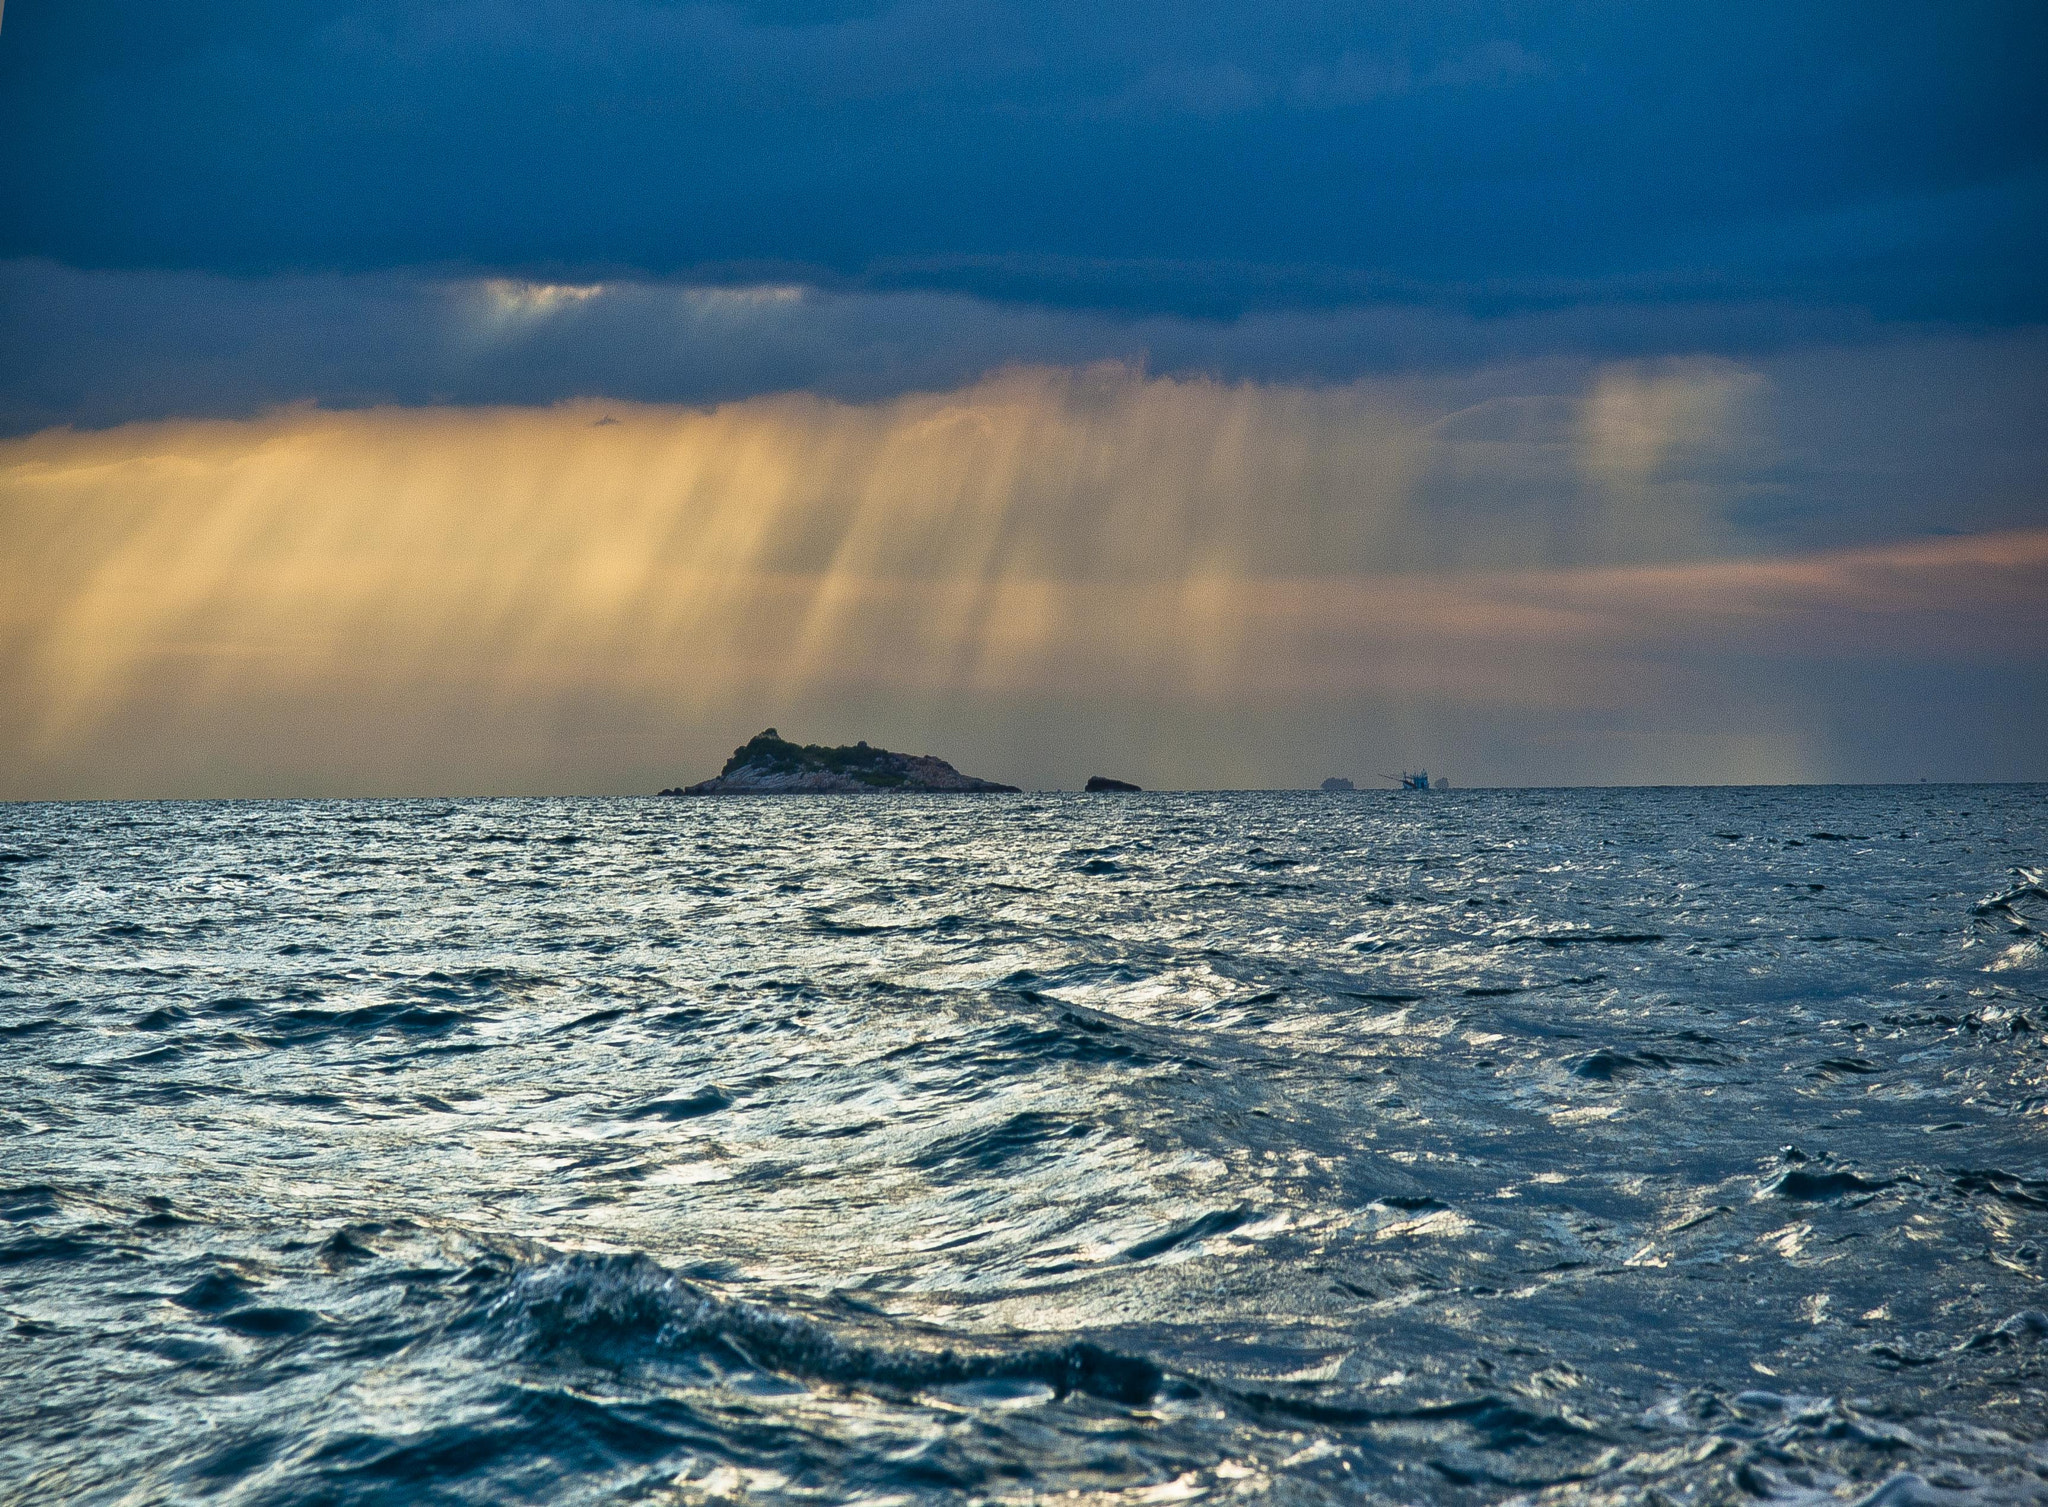 Photograph Island in the Storm by Nick de Domenico on 500px